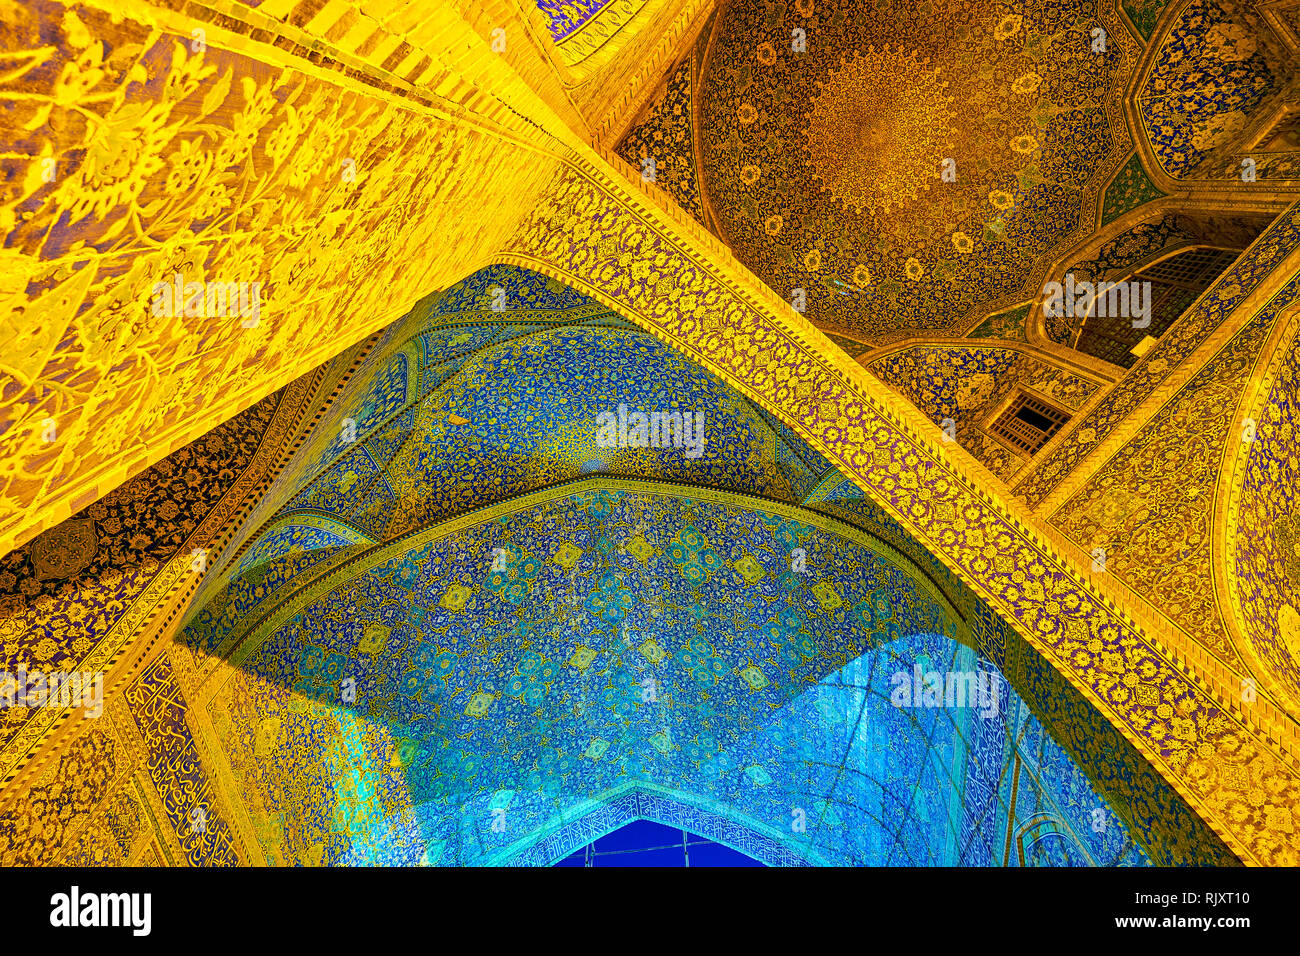 ISFAHAN, IRAN - OCTOBER 19, 2017: The beautiful ceilings and arches of Shah Mosque complex with unique Persian style floral patterns, on October 19 in - Stock Image